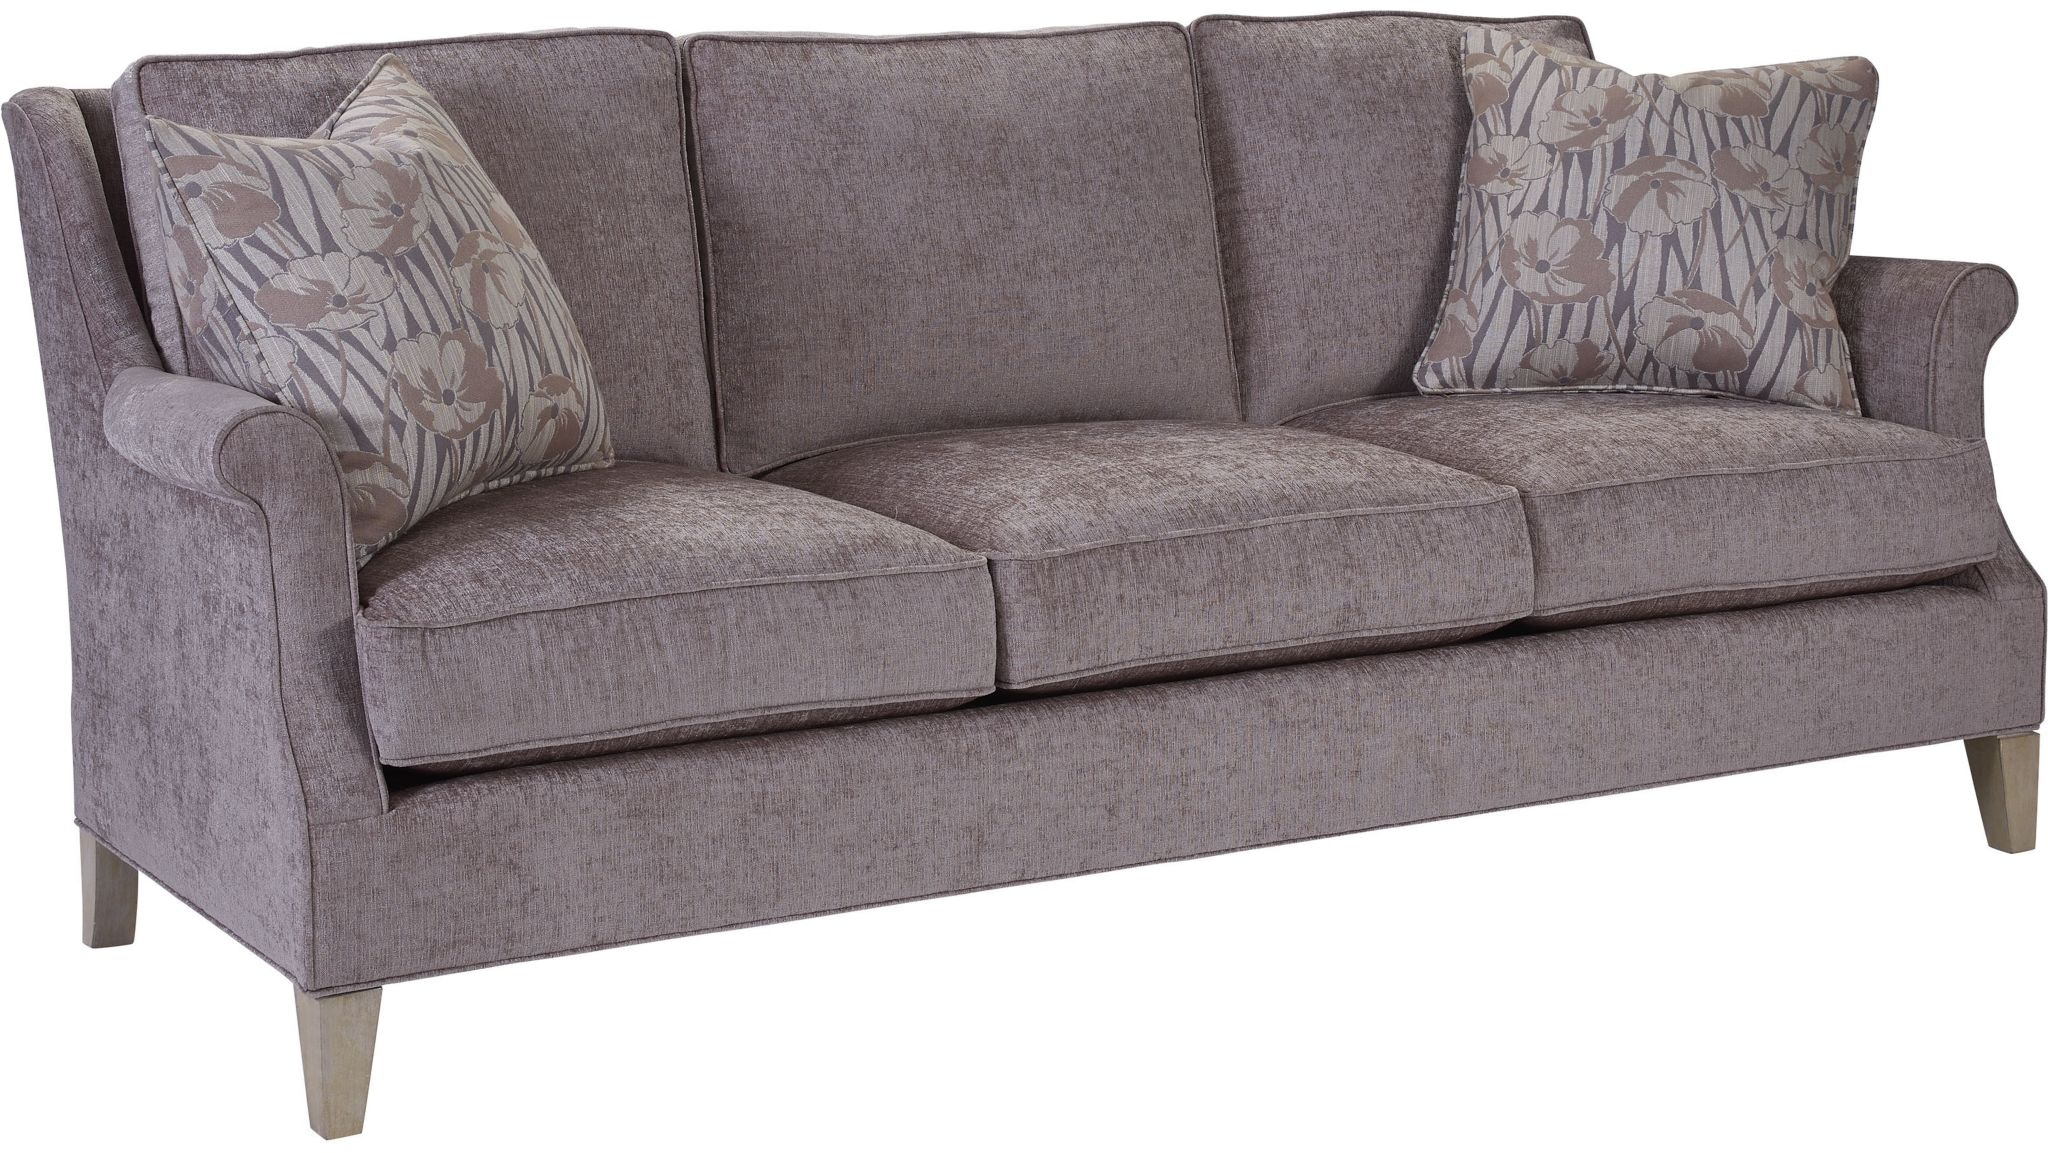 Thomasville Ooh La La Sofa 2533 12